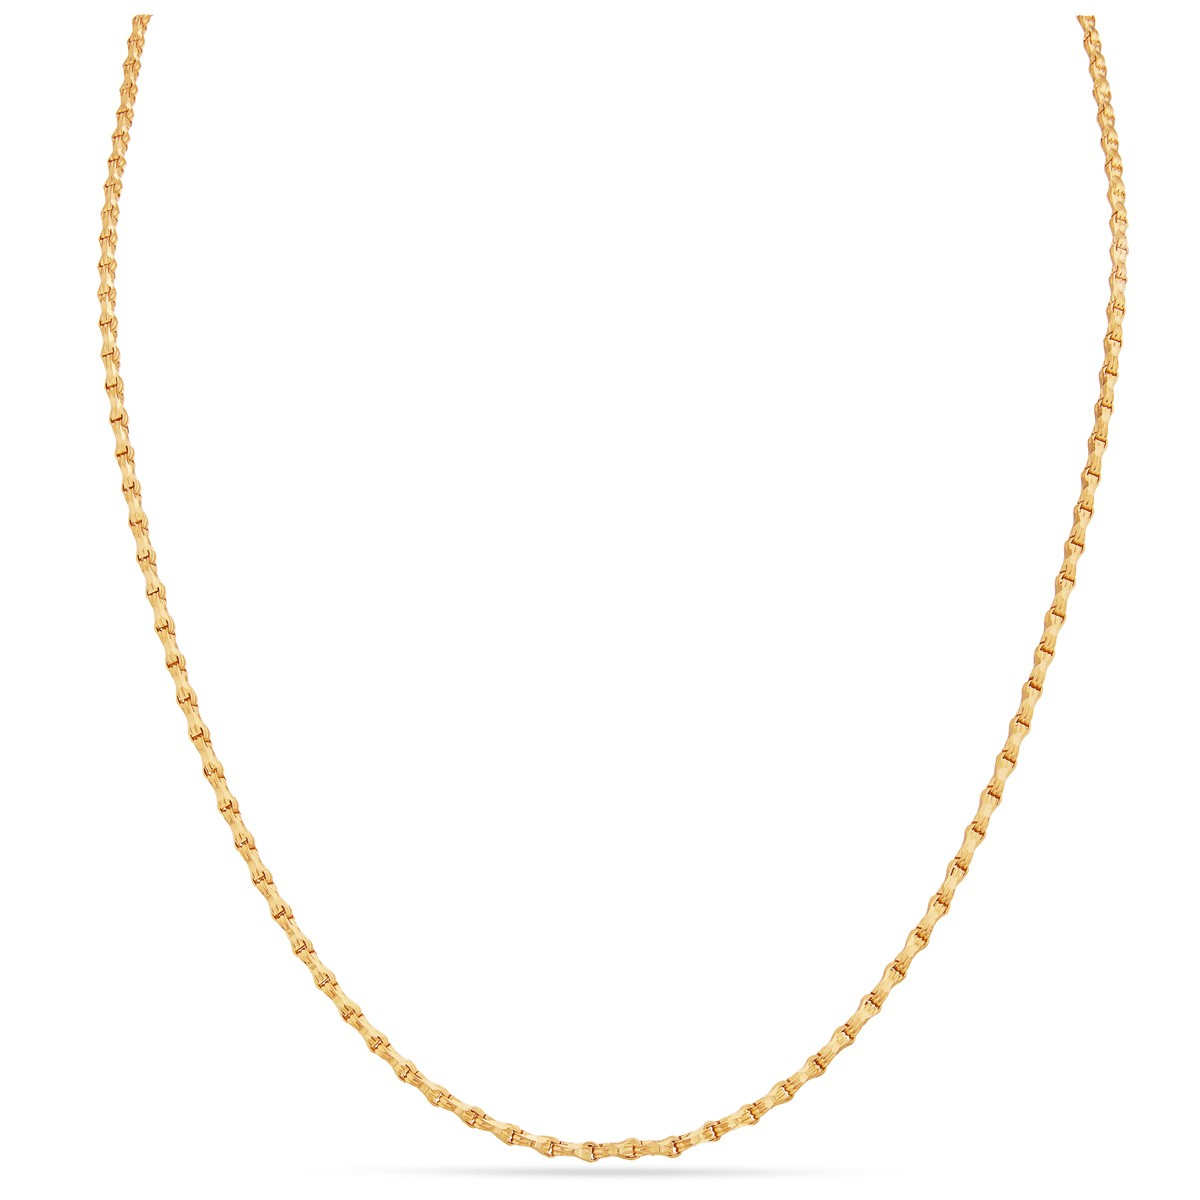 10 Gram Gold Chain Designs with Price ~ South India Jewels